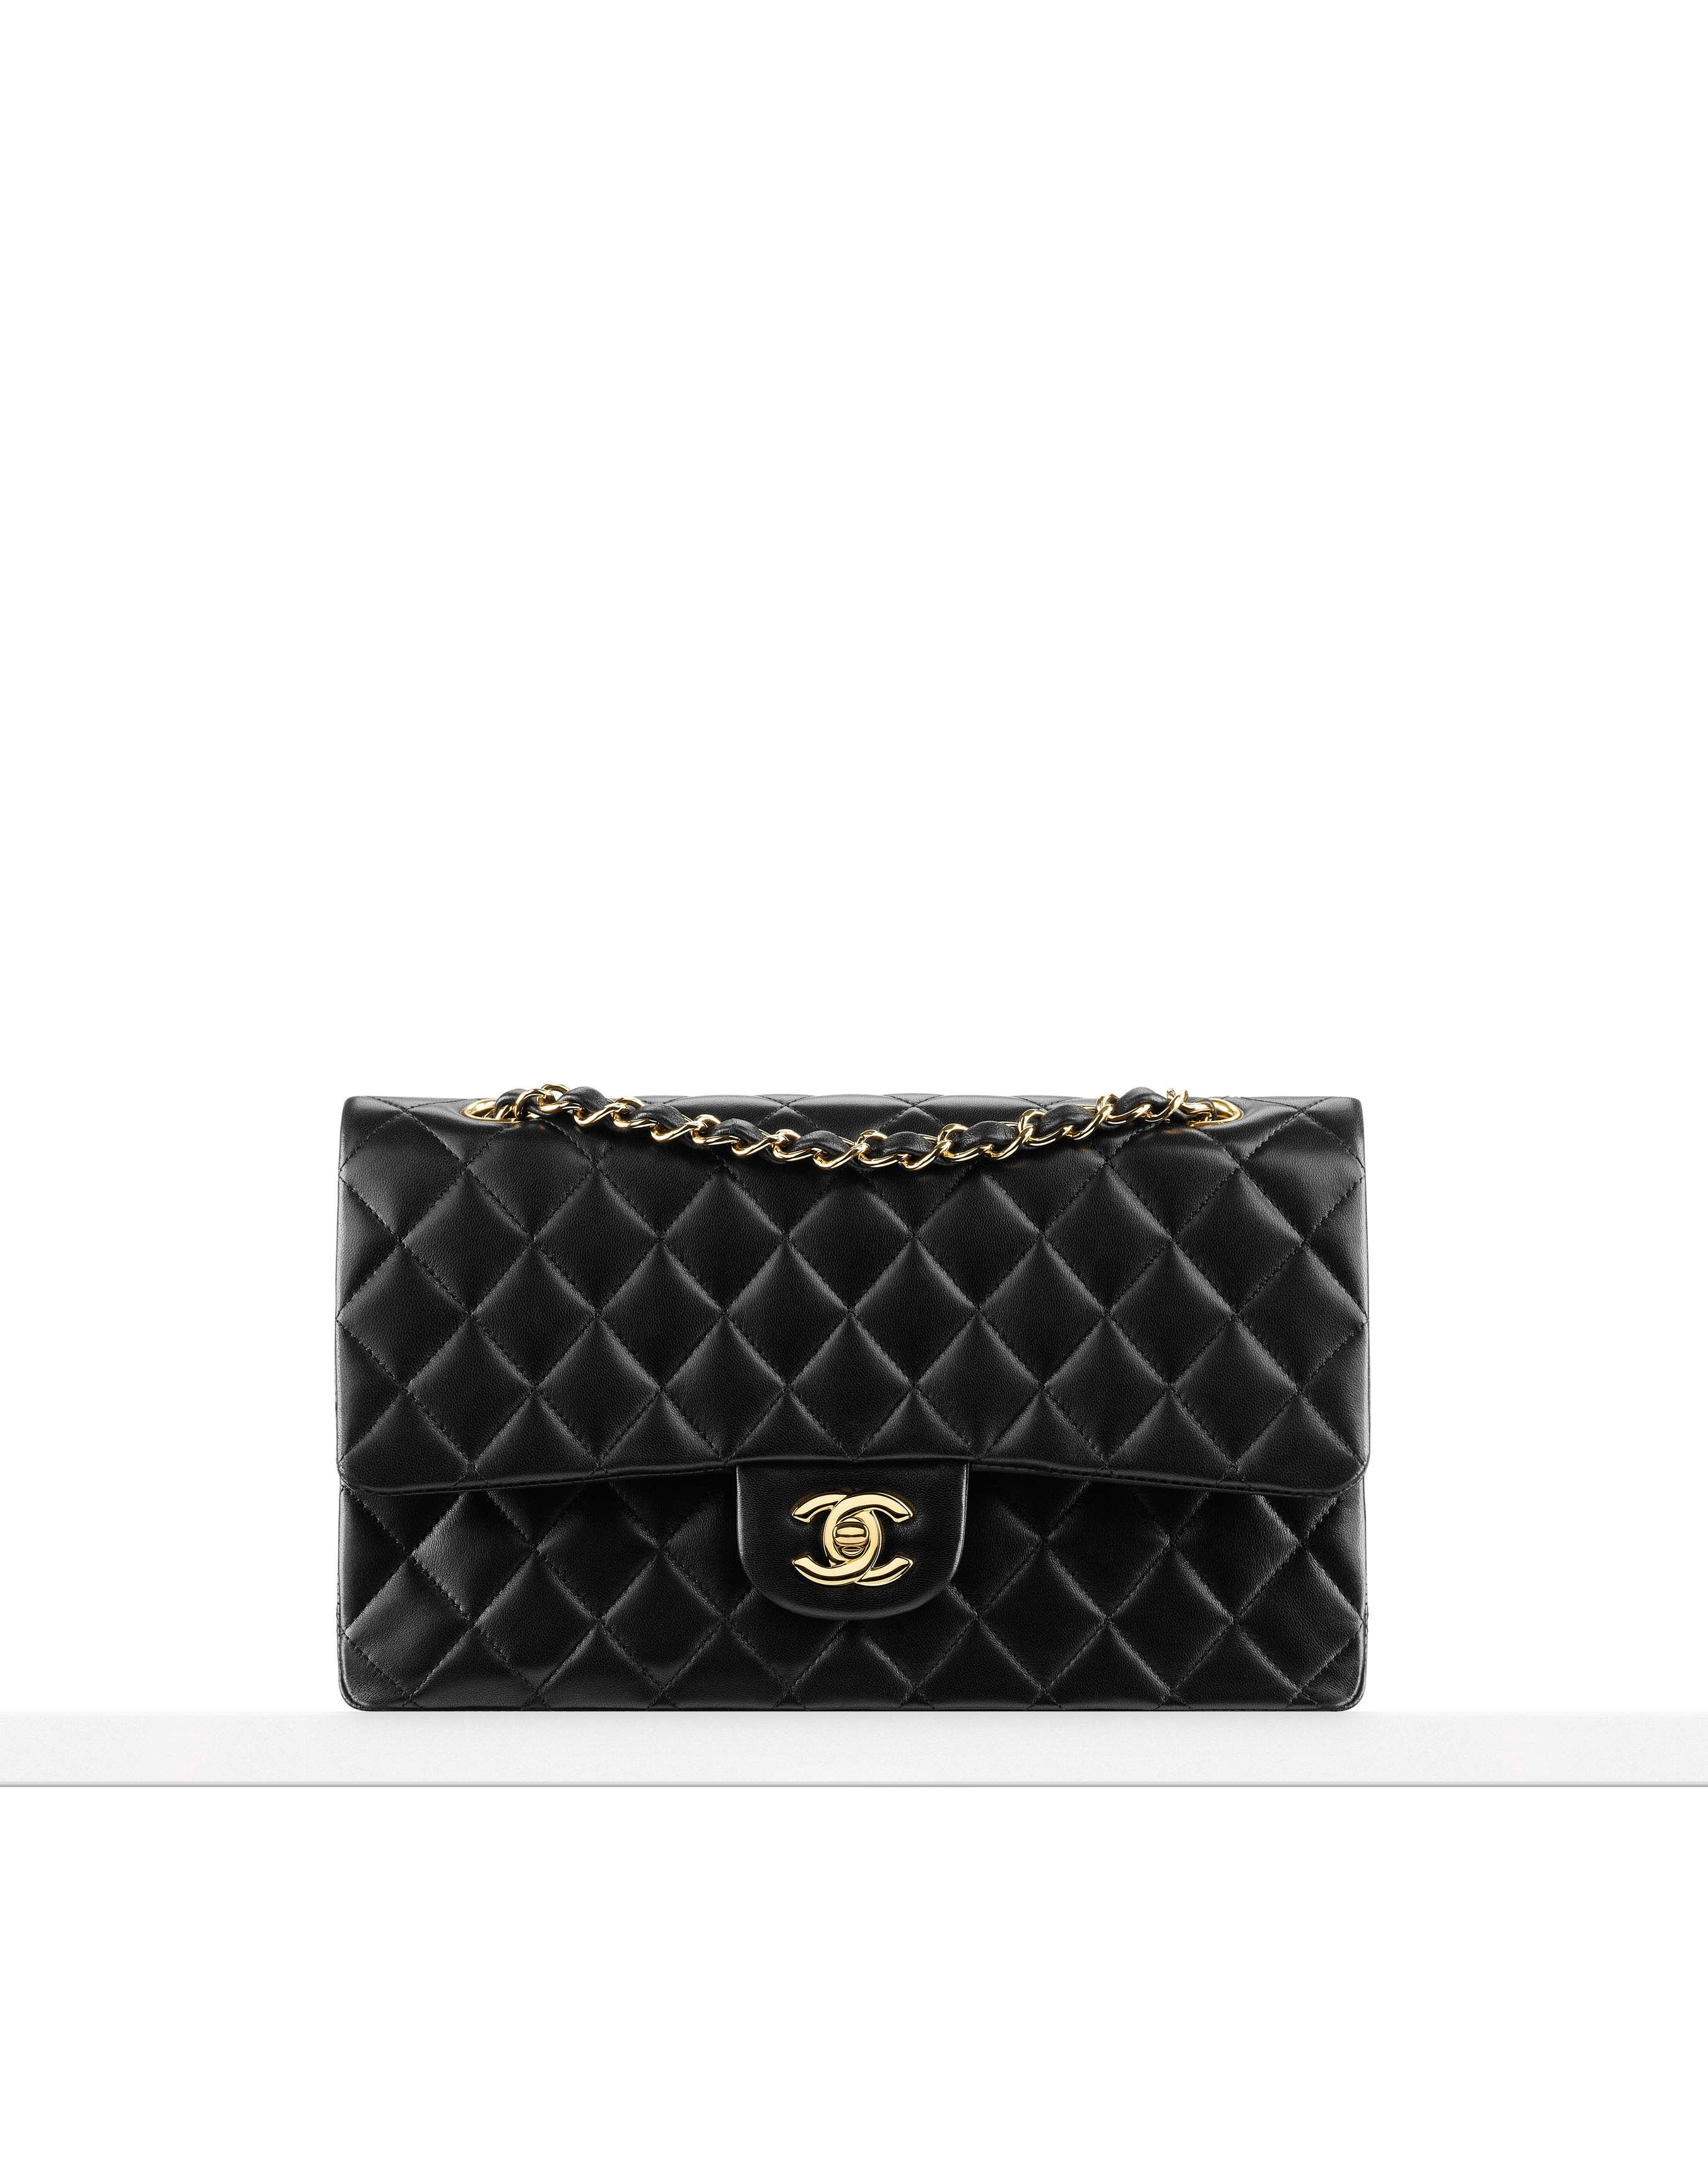 128ecfb4fc48 Chanel Classic Flag Bag - Lambskin and Gold Hardware